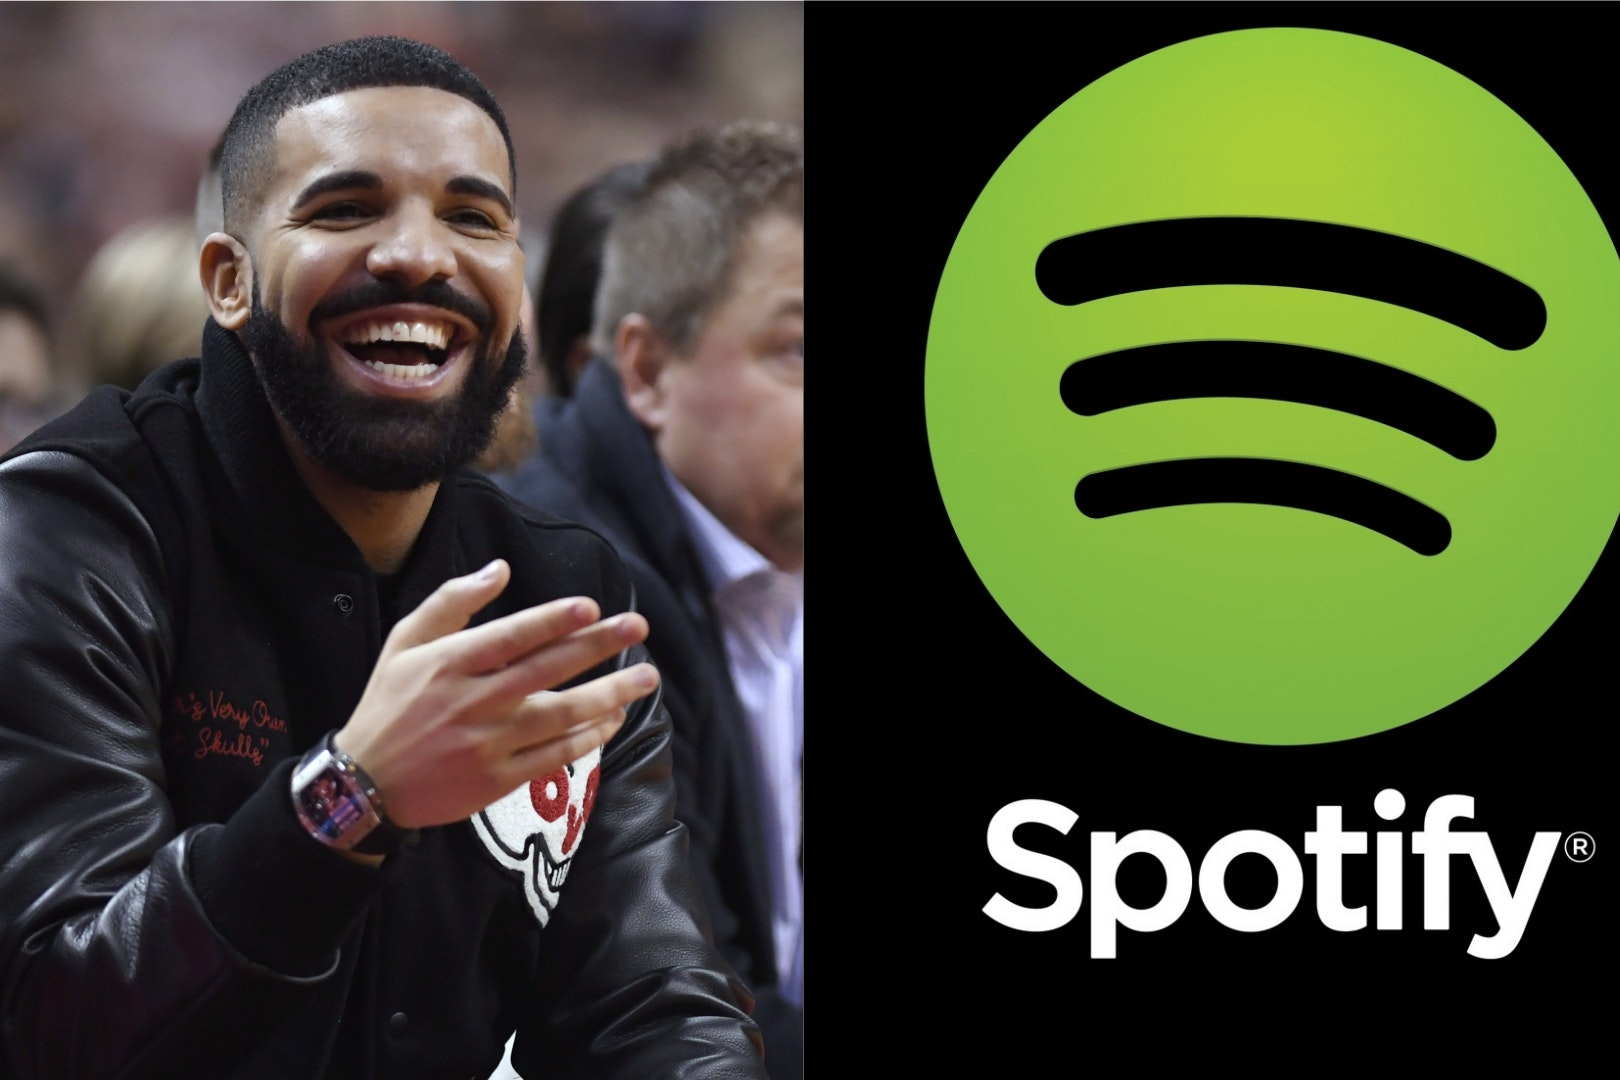 Drake and the Spotify logo